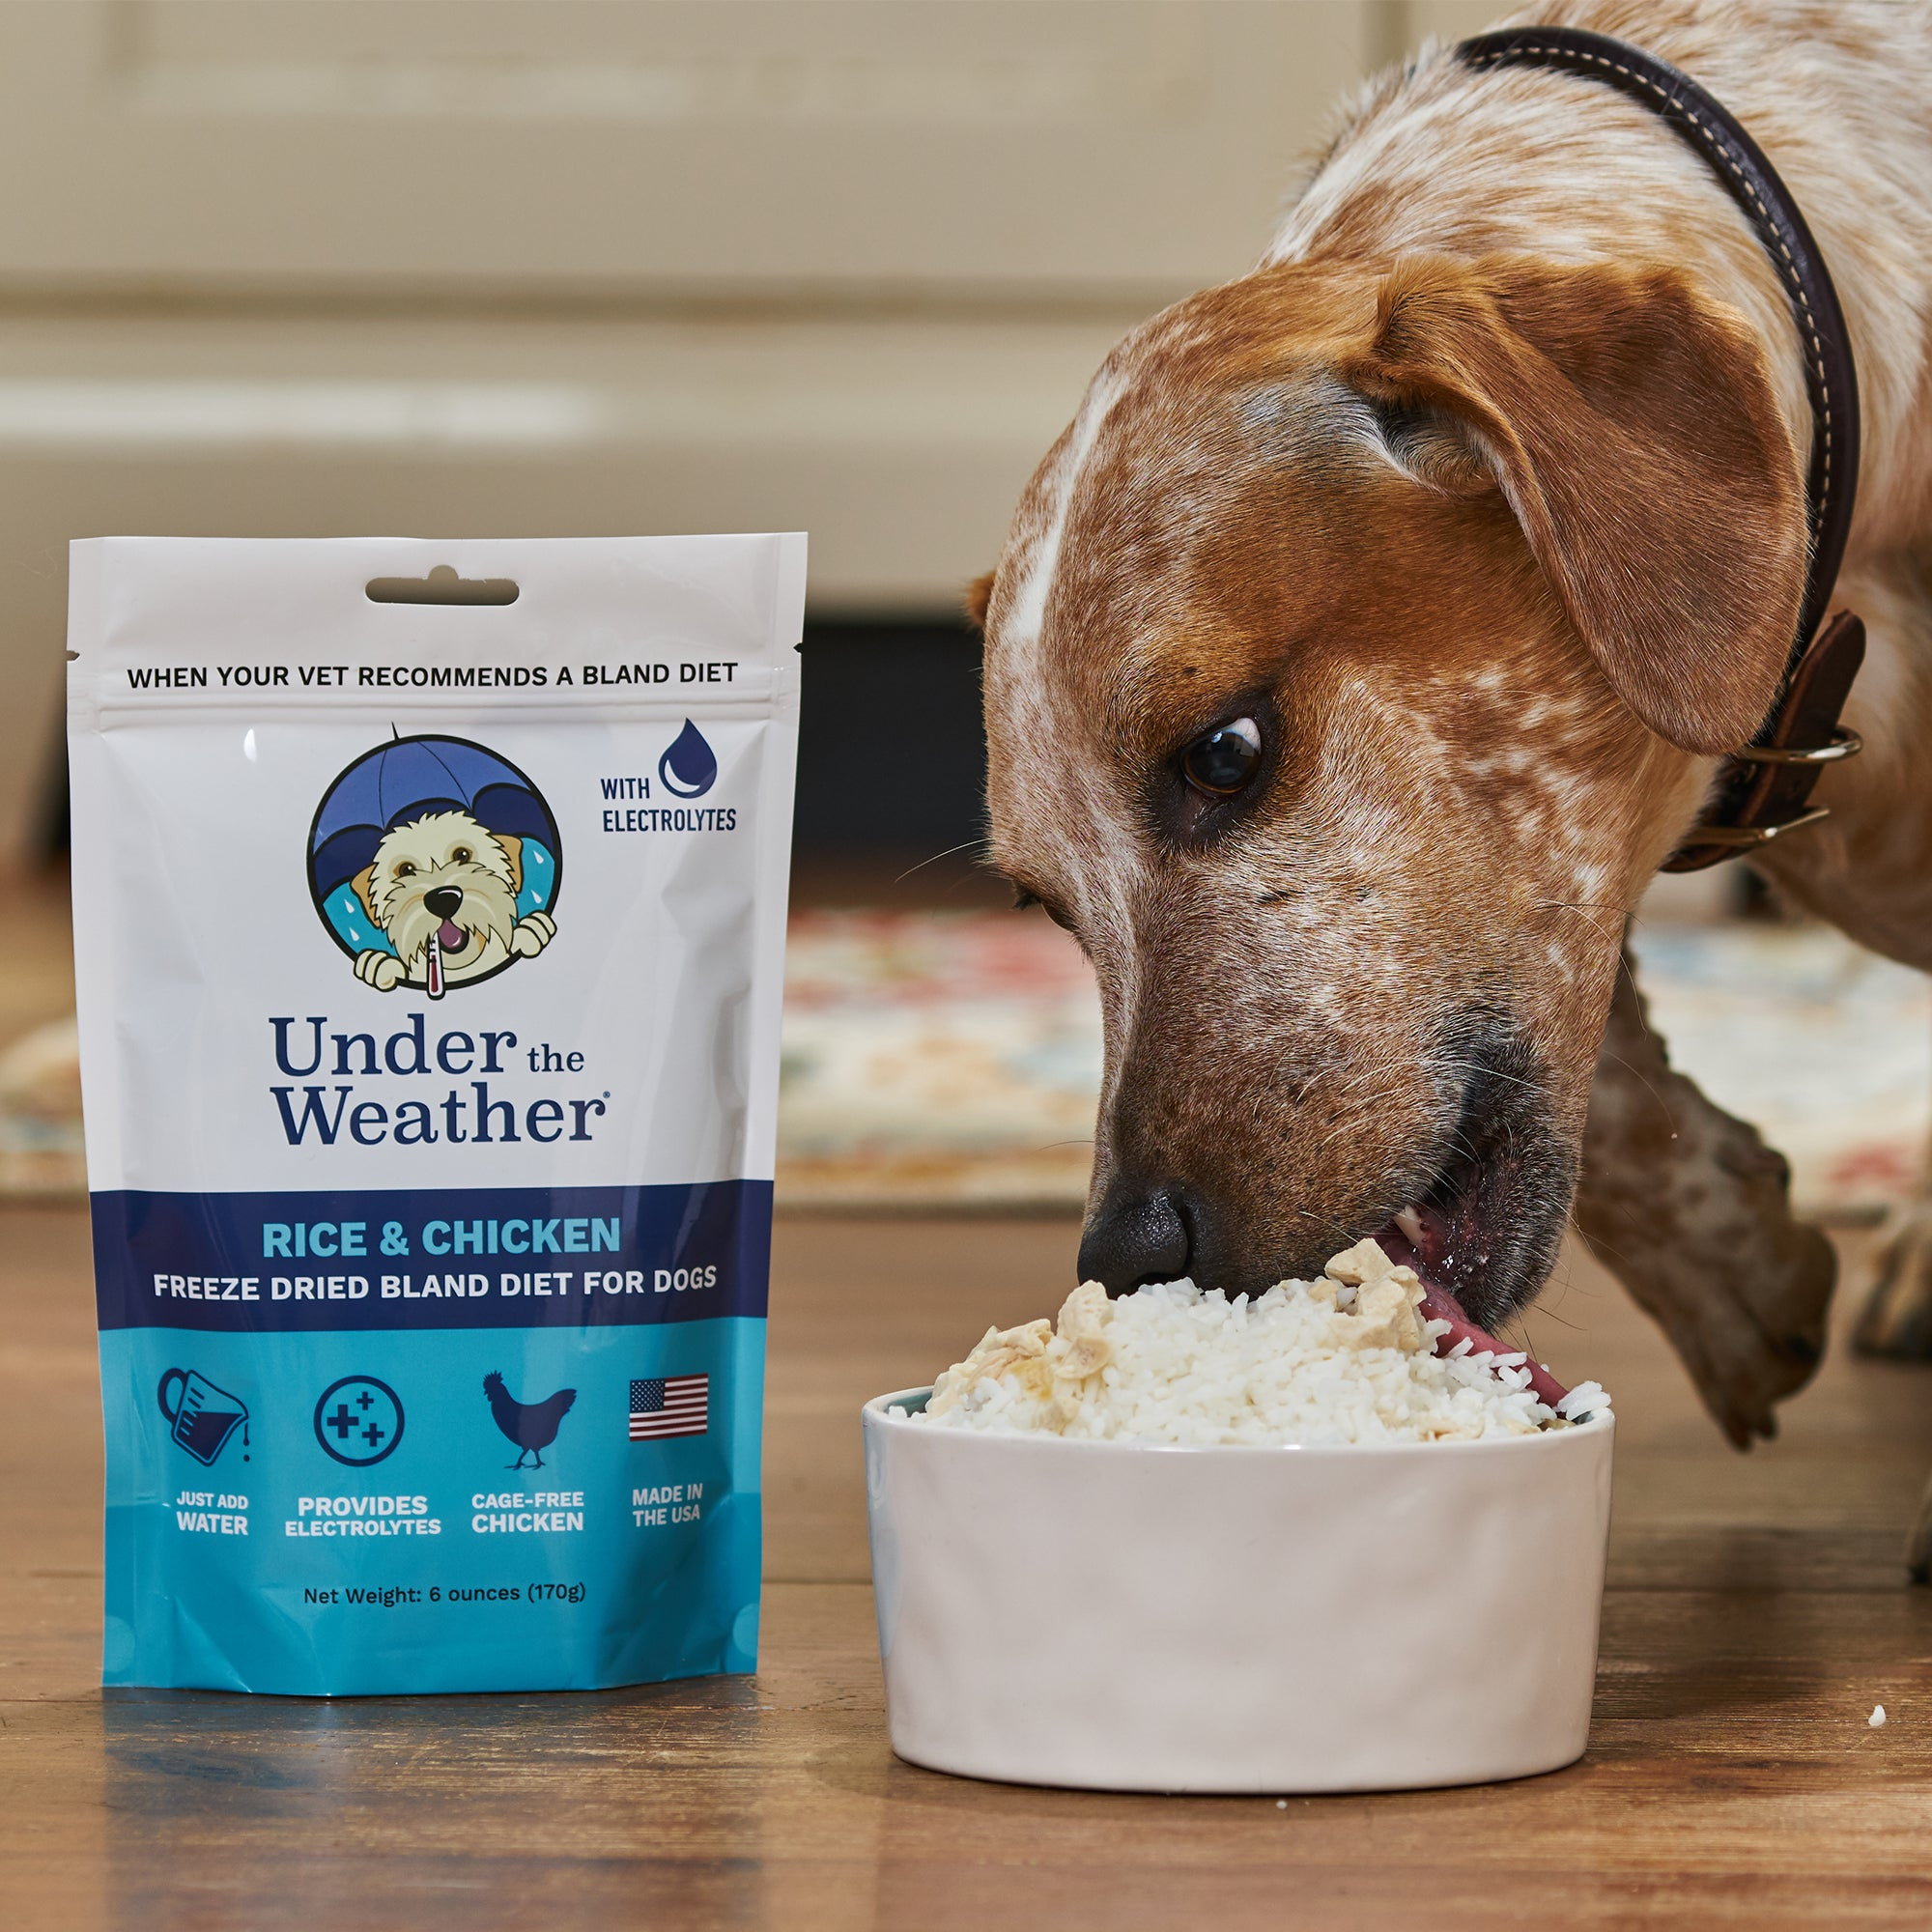 Chicken & Rice Bland Diet For Dogs - 4 Pack